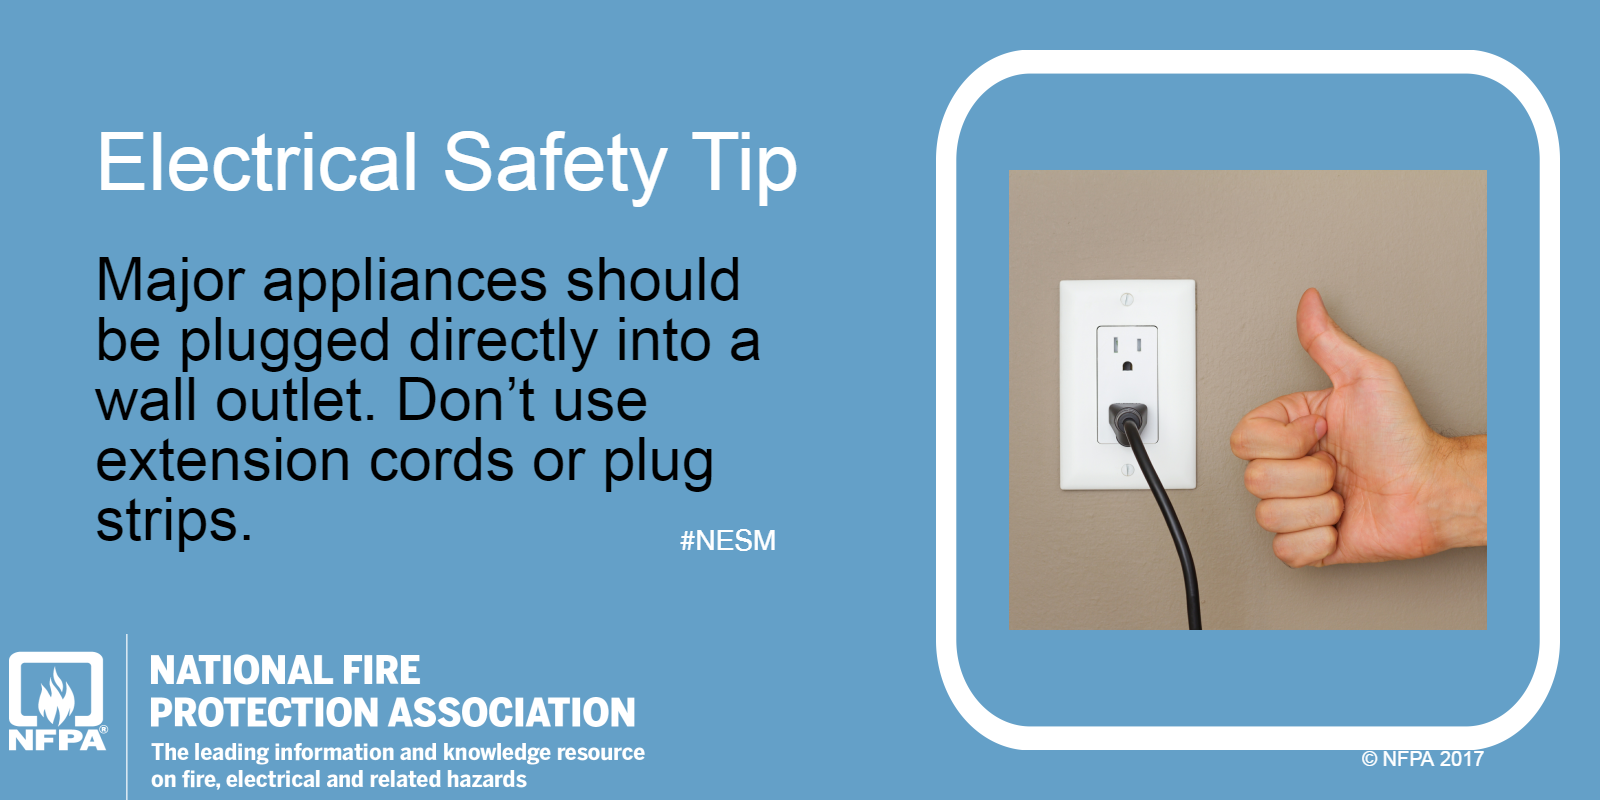 Electrical outlet with safety tip that major appliances should be plugged directly into a wall outlet. Don't use extension cords or plug strips.